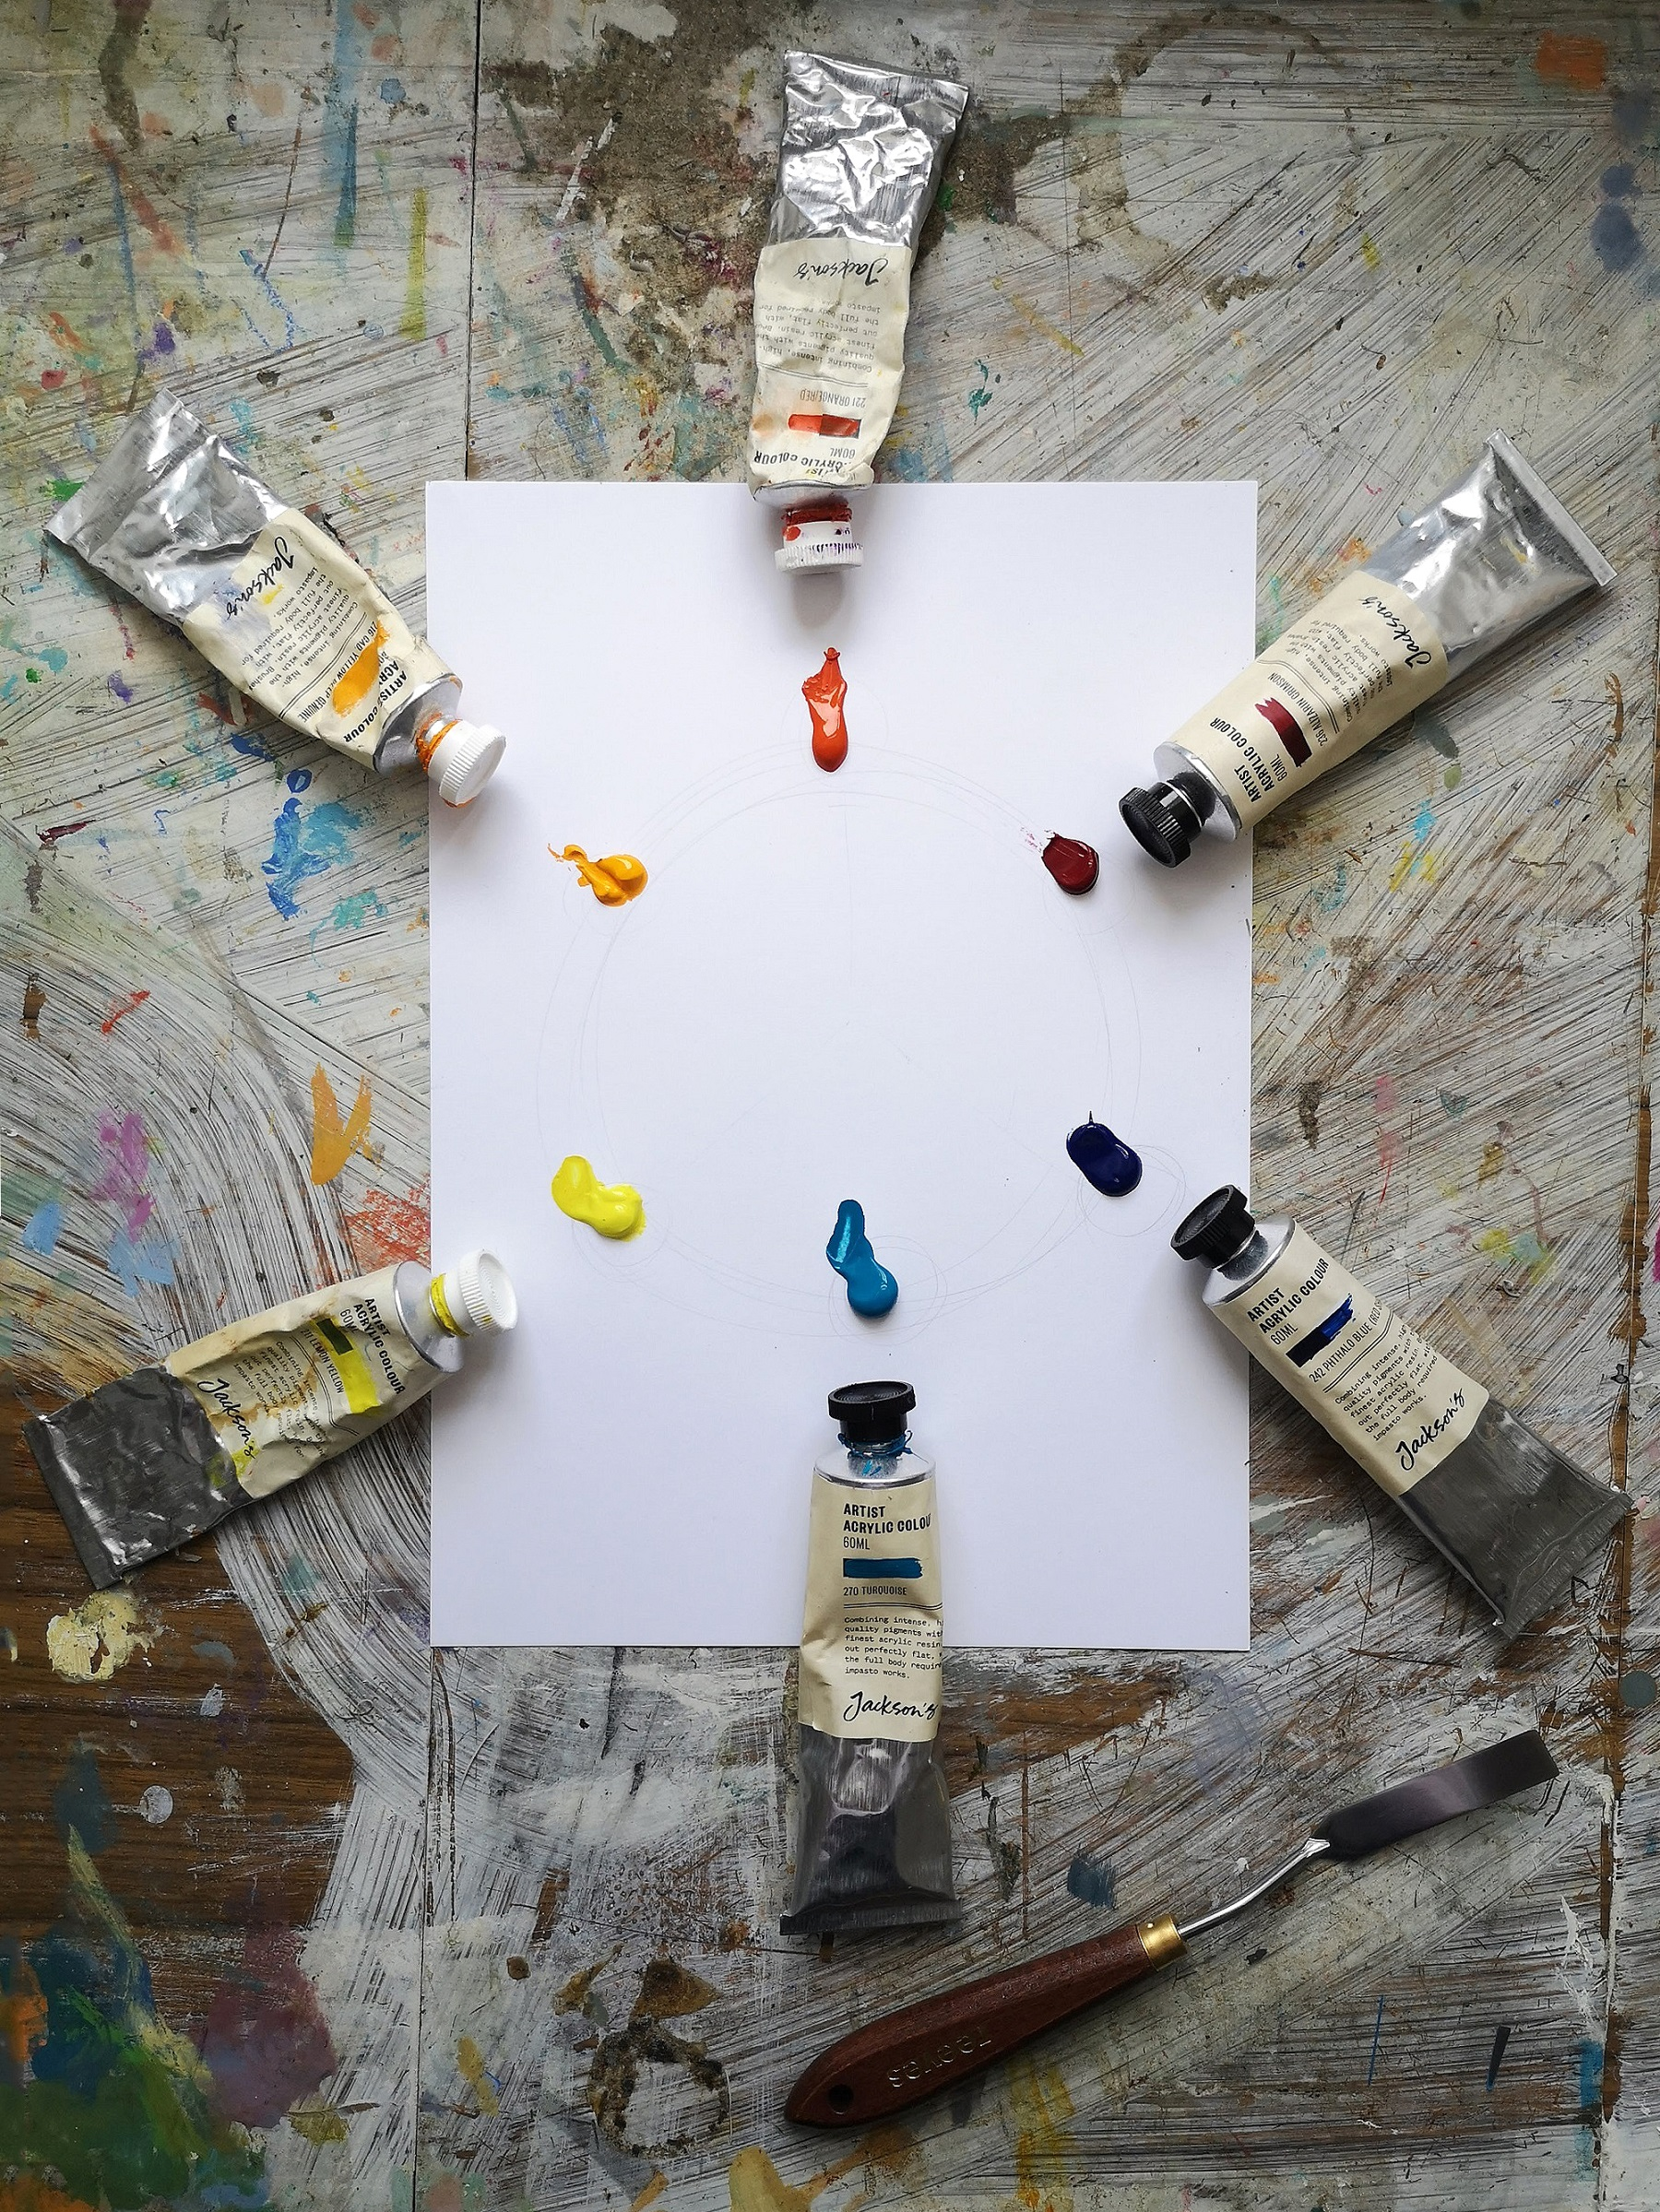 A six colour primary palette comprising Orange/Red, Alizarin Crimson, Phthalo Blue, Turquoise, Lemon Yellow and Cadmium Yellow Deep Genuine